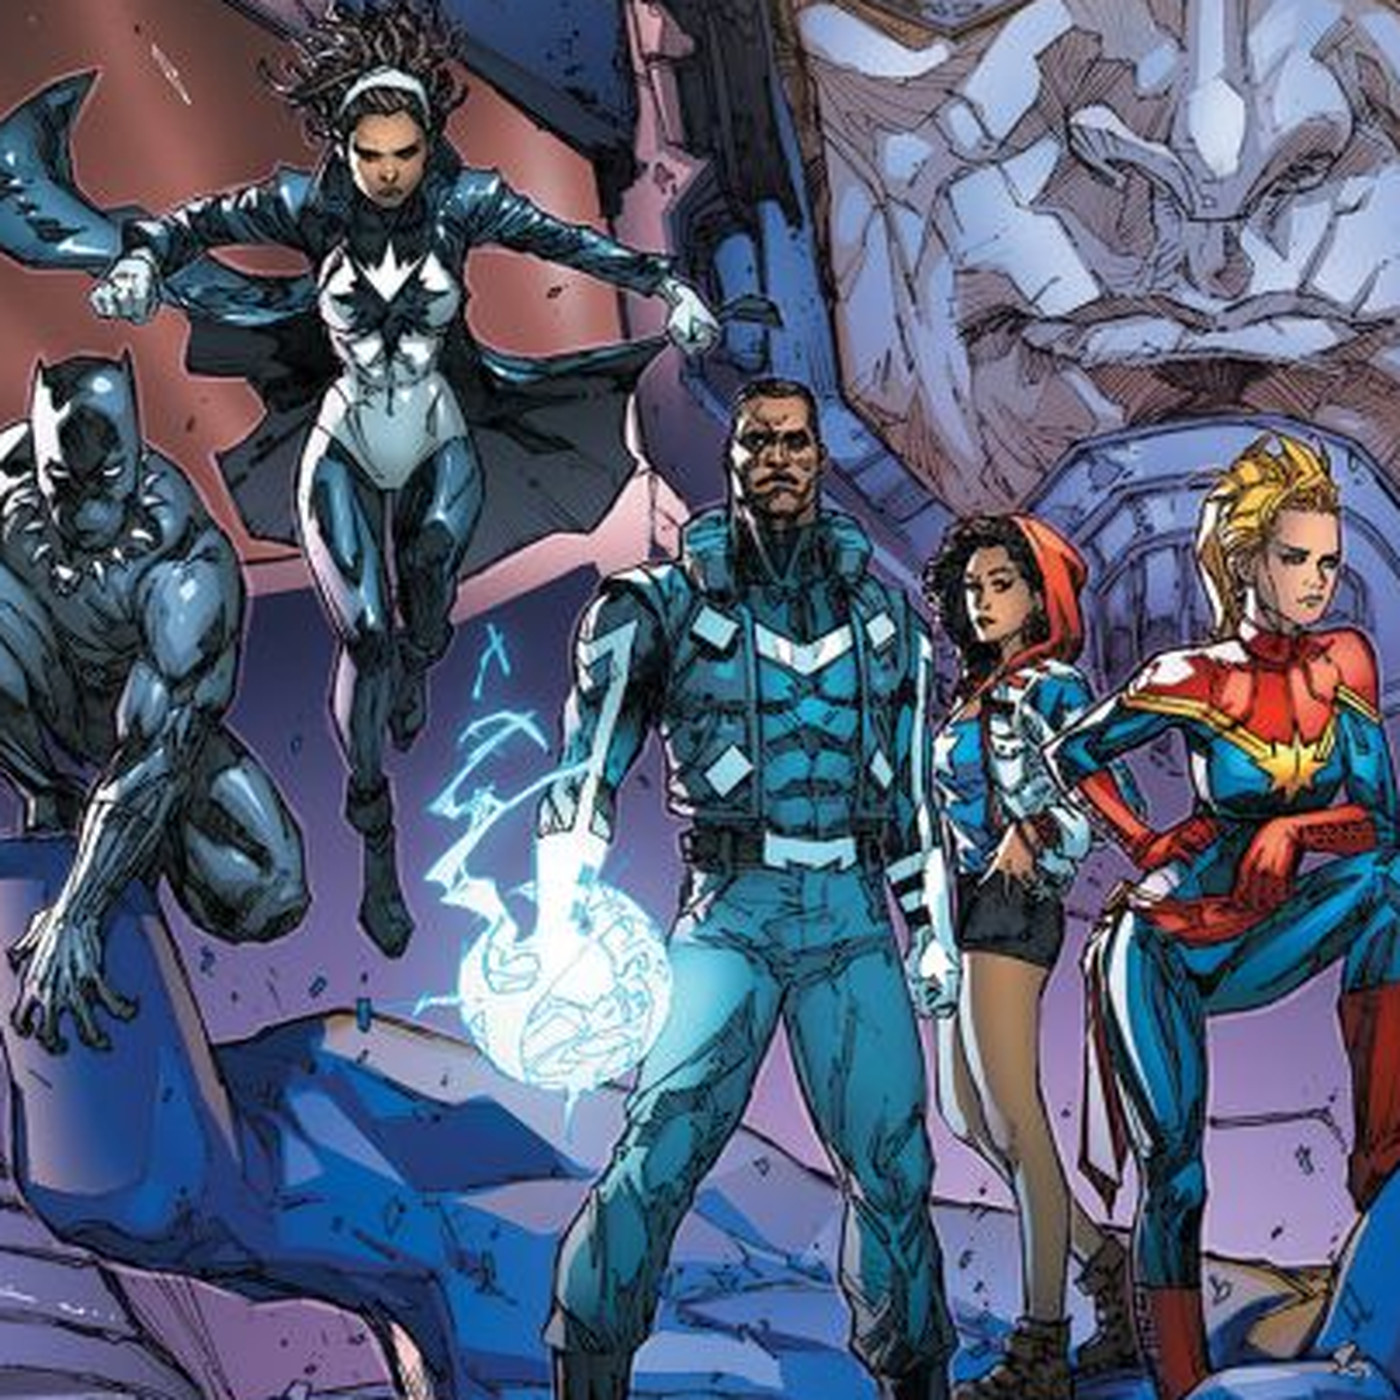 Marvel's most exciting new comic book is The Ultimates - Vox